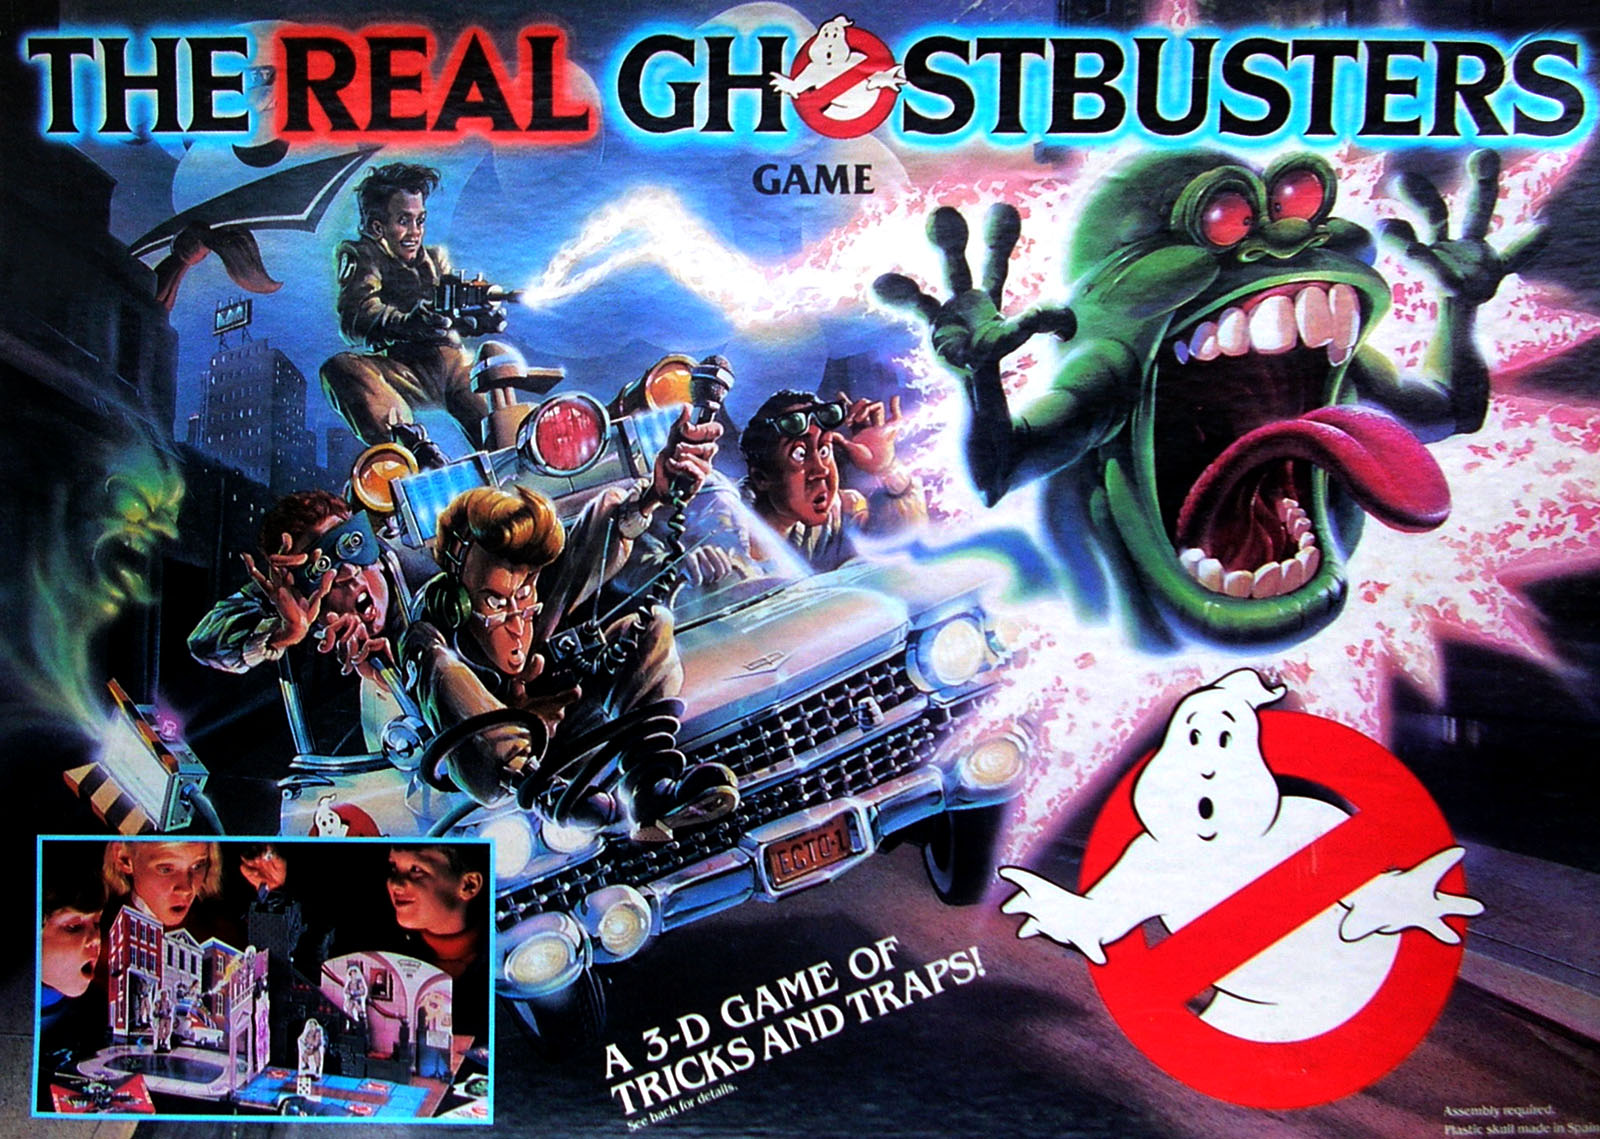 The real ghostbusters gioco da tavolo brivido 1986 MB